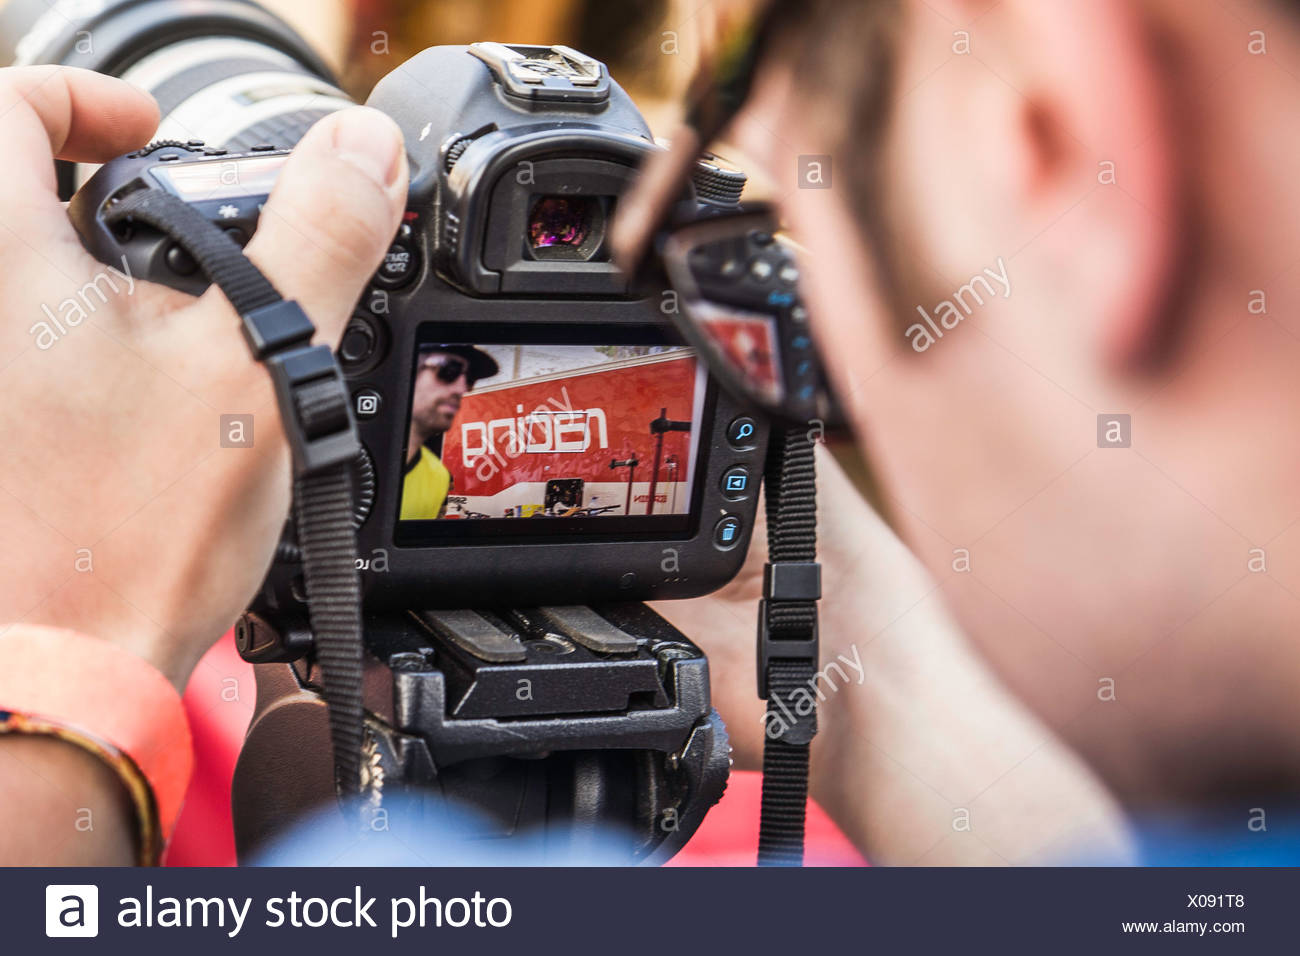 Close up of photographer checking photograph of mountain biker on camera - Stock Image